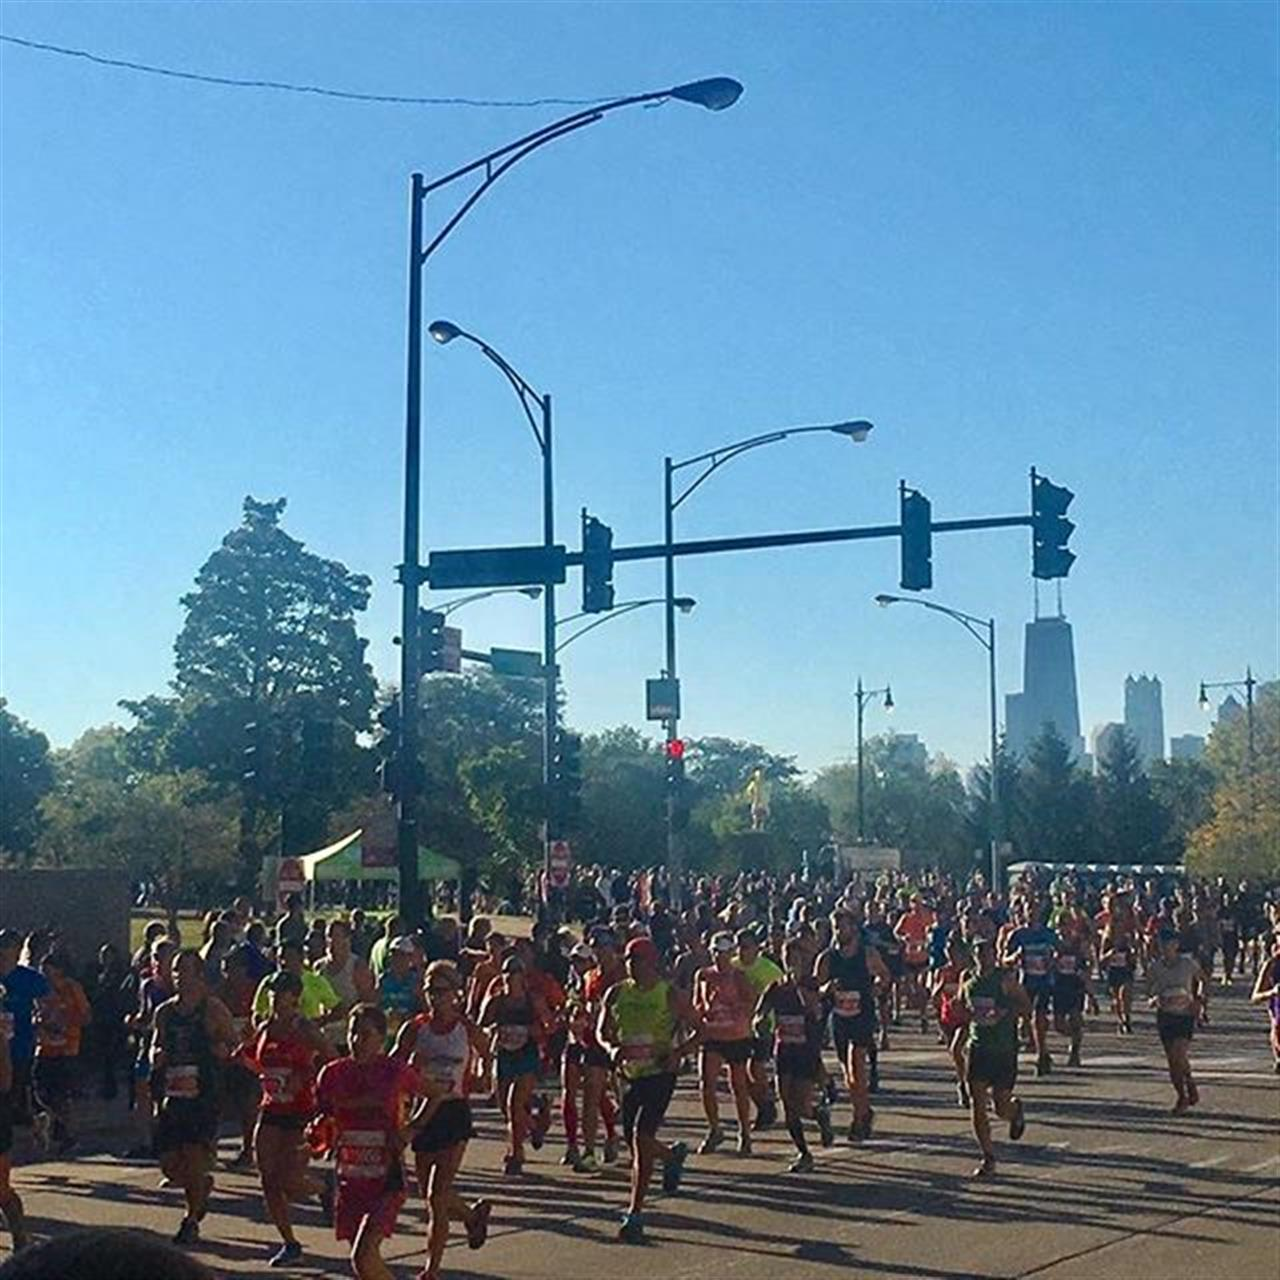 The Chicago Marathon is always one of the best Sundays to live in a Chicago neighborhood. It's the most positive, supportive and inspiring days. #chicagomarathon #lincolnpark #lakeview #chicago #leadingrelocal #bairdwarner